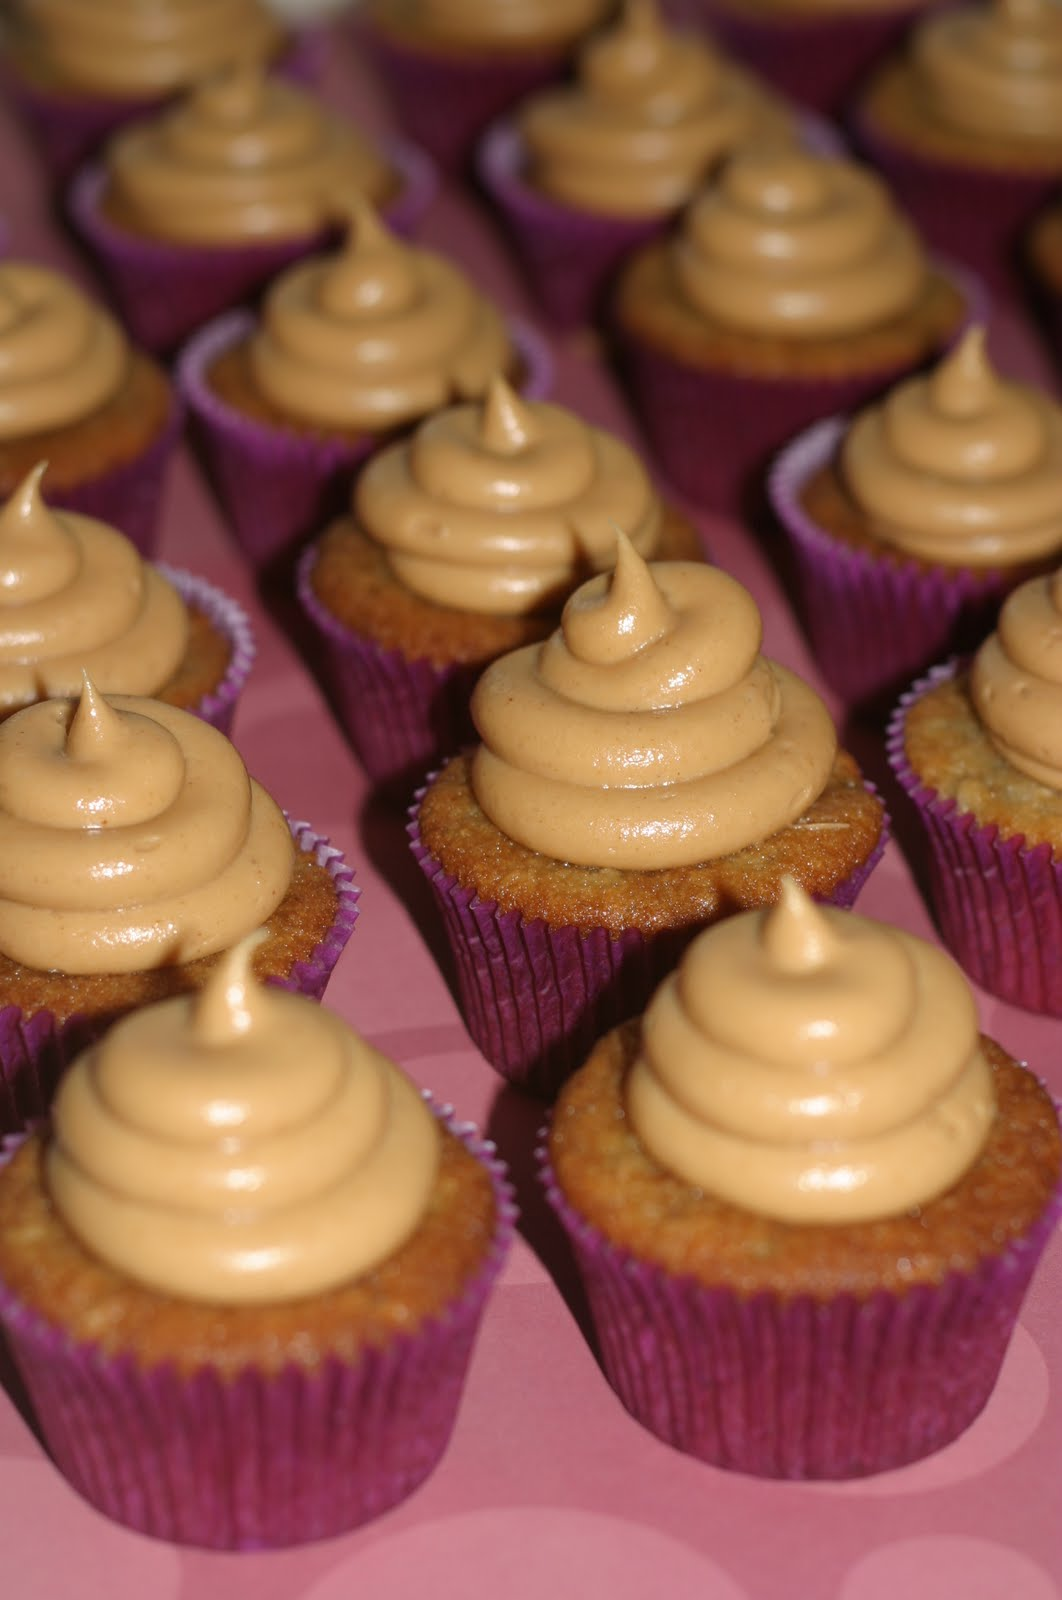 Banana Cake With Peanut Butter Mousse Filling